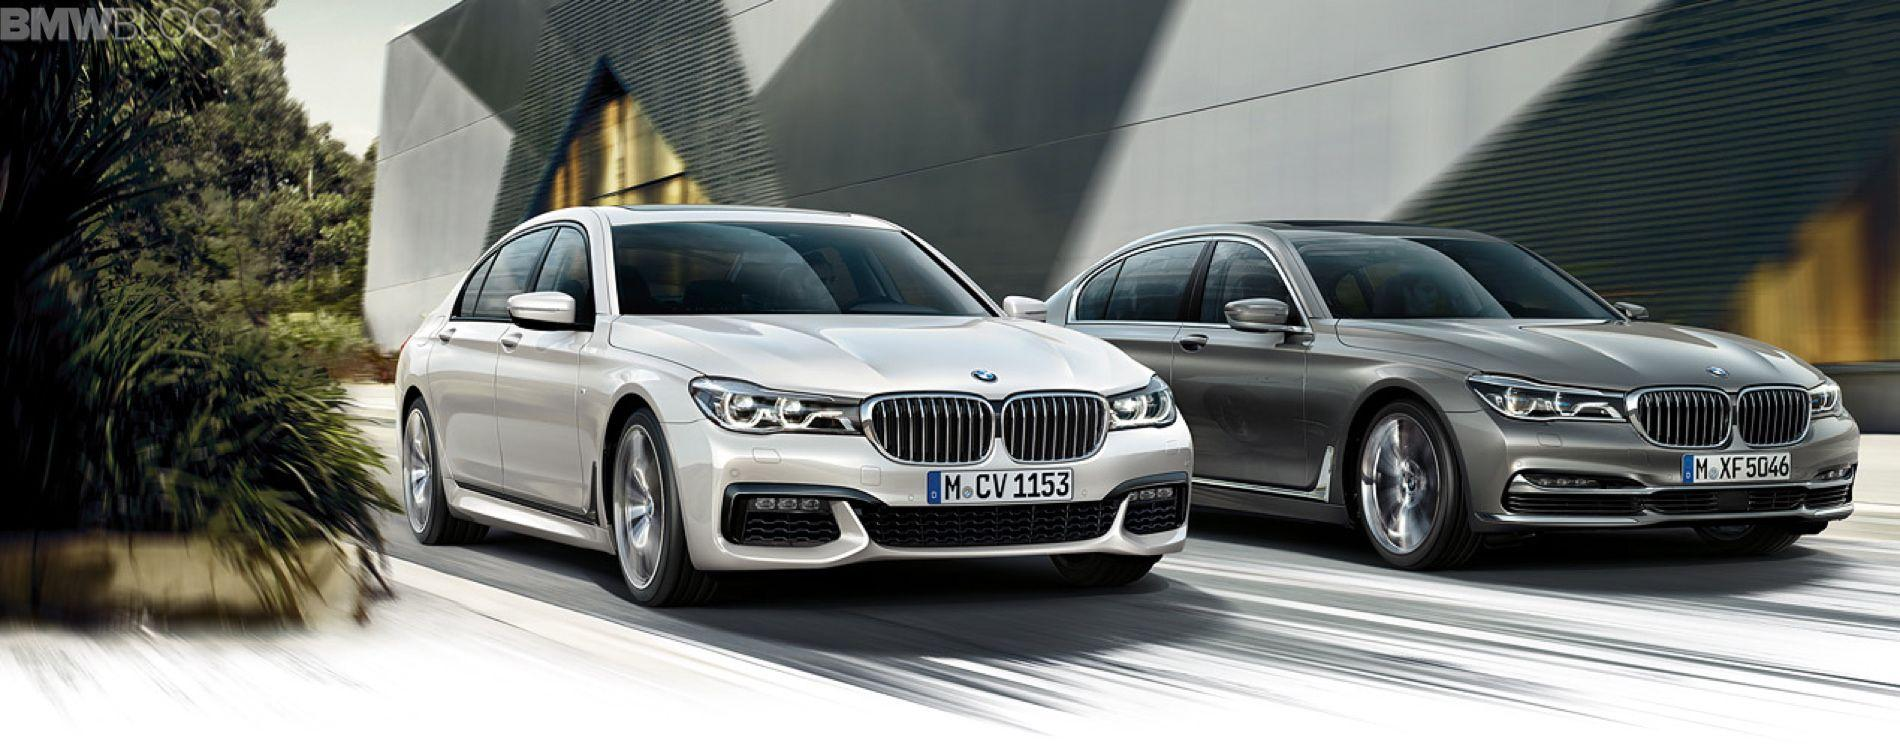 BMW to provide official vehicles for heads of state